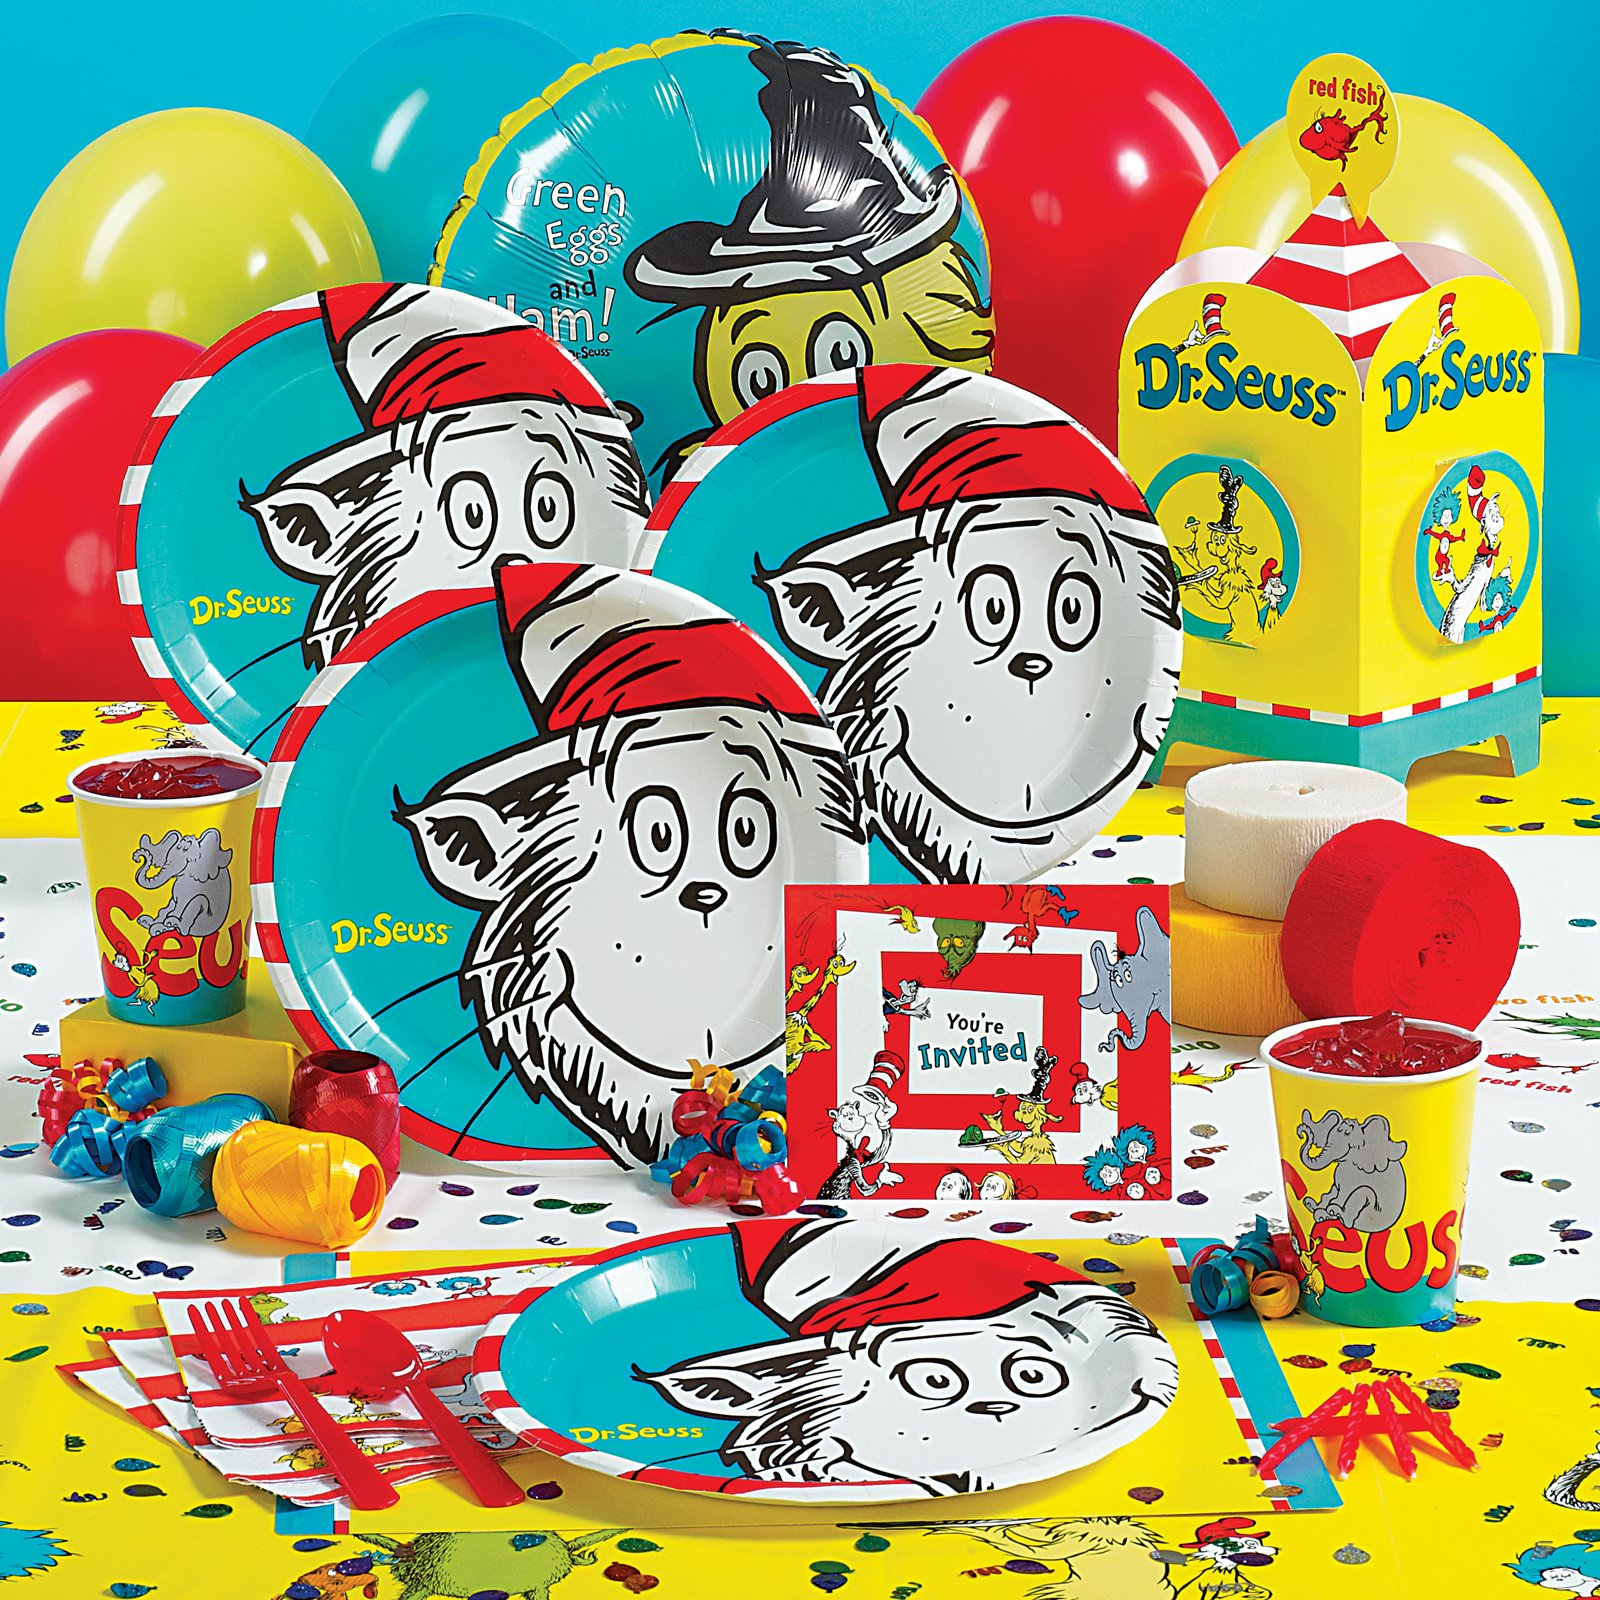 Dr Seuss Party Decorations Dr Seuss Decorations Party City Theodore Roosevelt Party